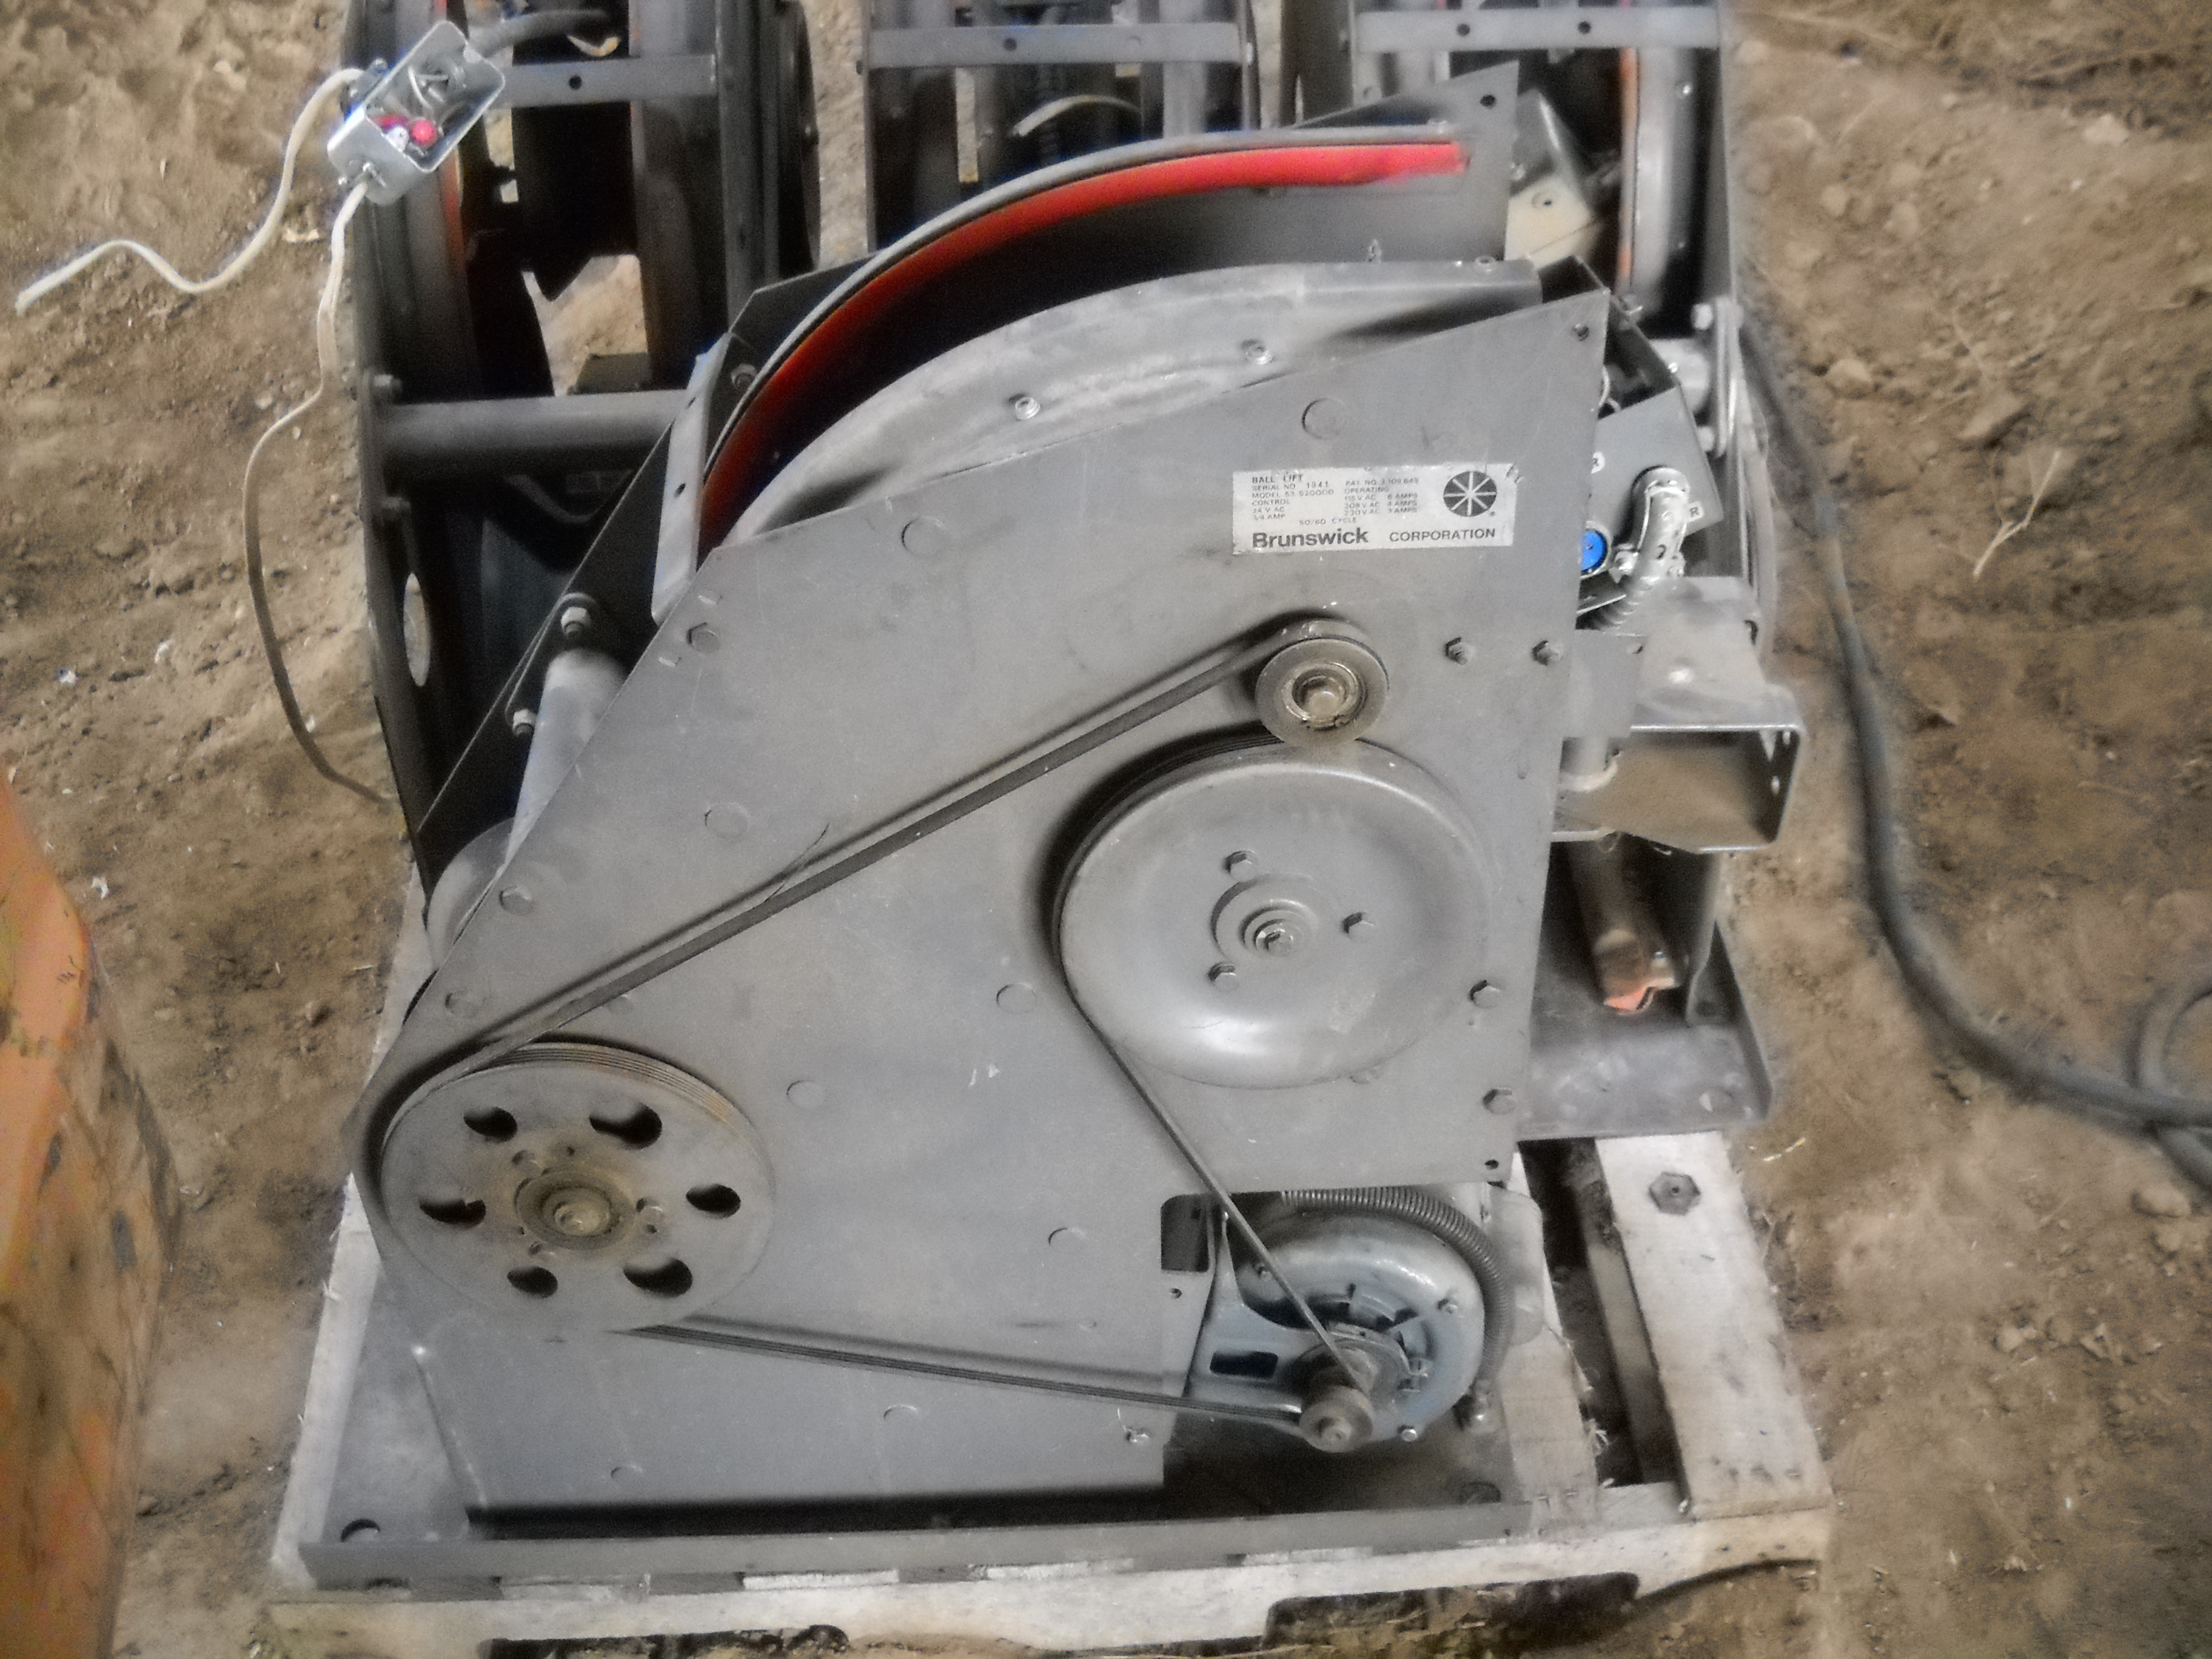 Kicker Wheels Brunswick A2 Electrical Wiring Converted Selling Parts Or Whole Machines For 70000